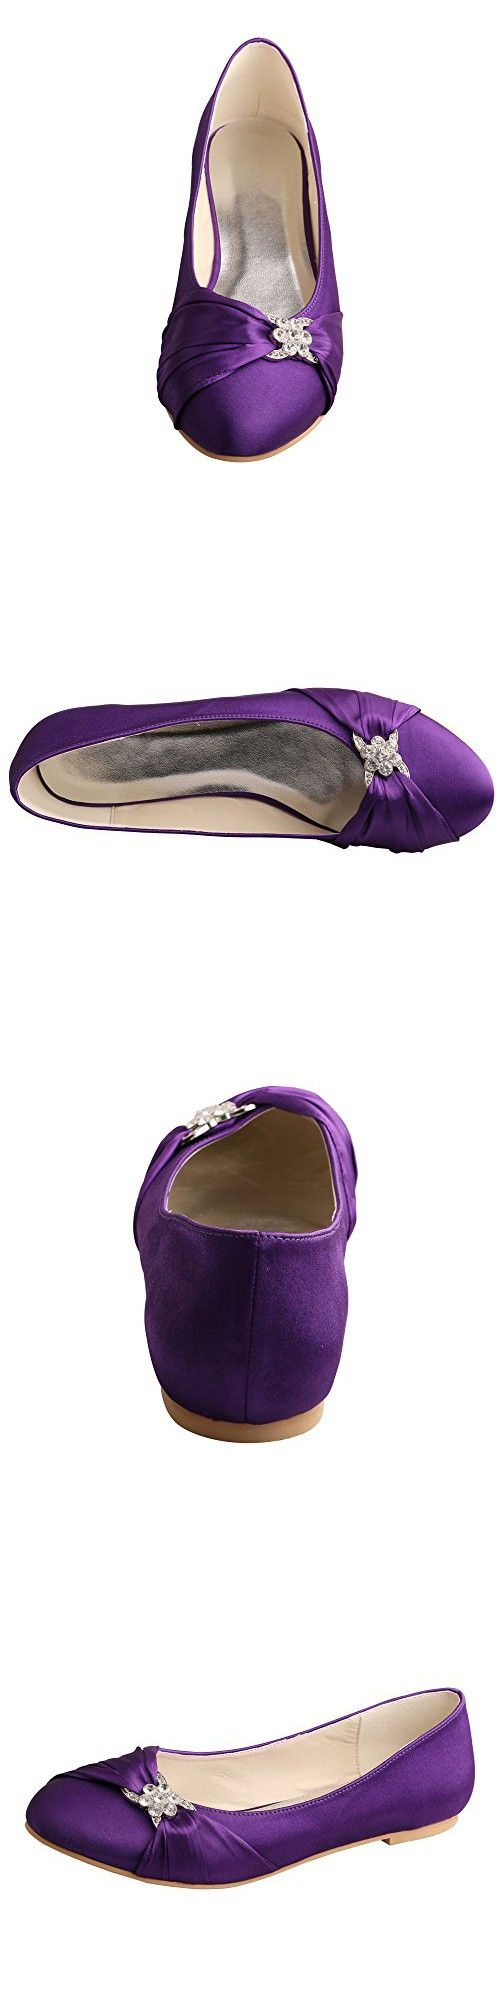 Wedopus MW757 Women's Pleated Closed Toe Ballet Flat Satin Wedding Shoes for Bride Size 10 Purple